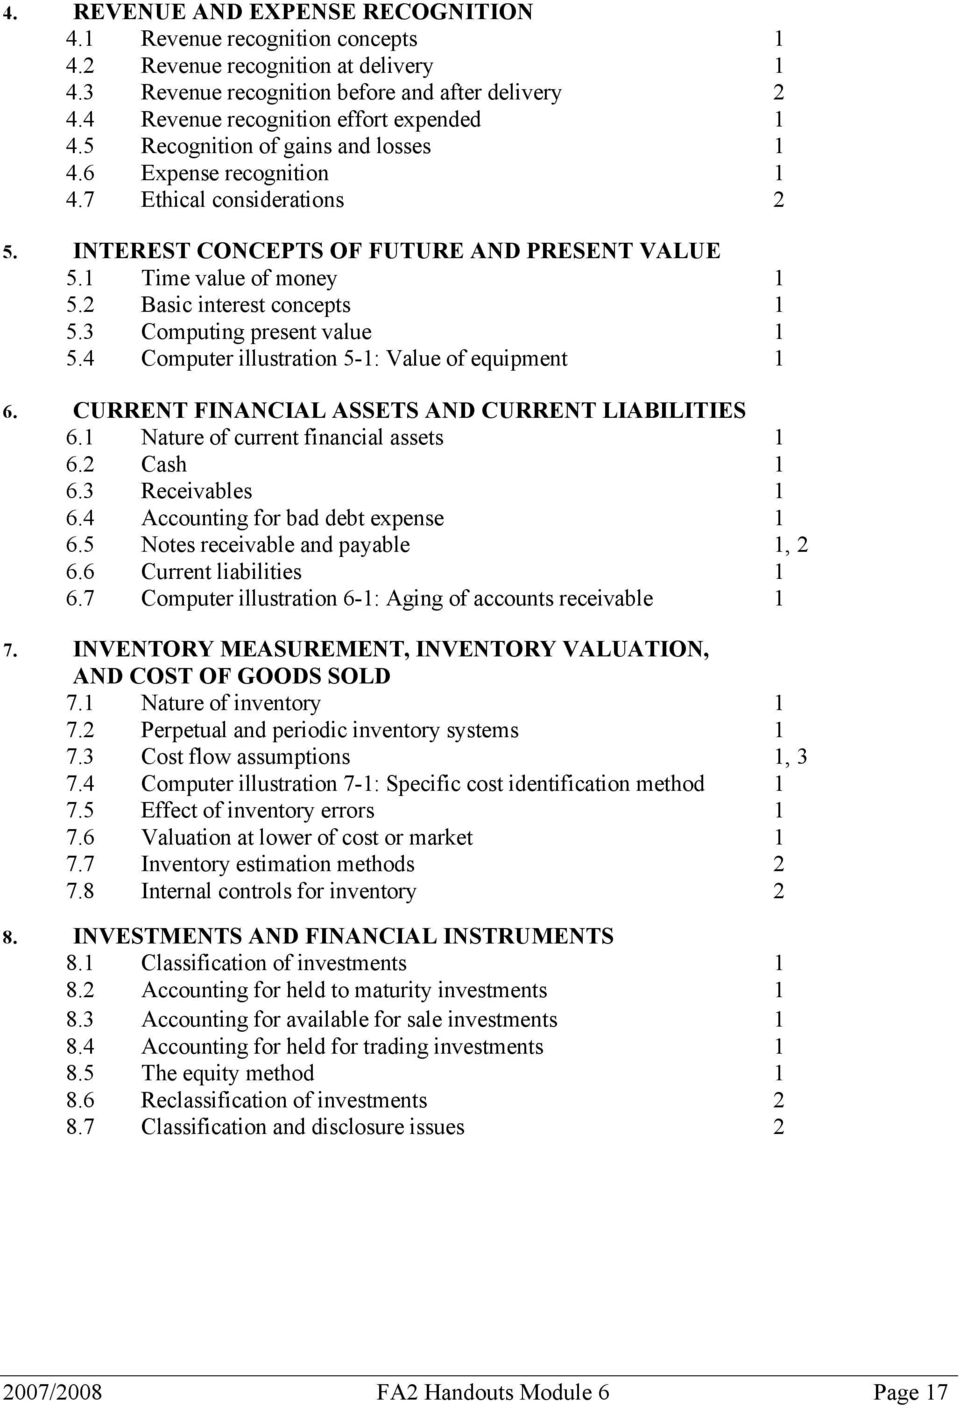 1 Time value of money 1 5.2 Basic interest concepts 1 5.3 Computing present value 1 5.4 Computer illustration 5-1: Value of equipment 1 6. CURRENT FINANCIAL ASSETS AND CURRENT LIABILITIES 6.